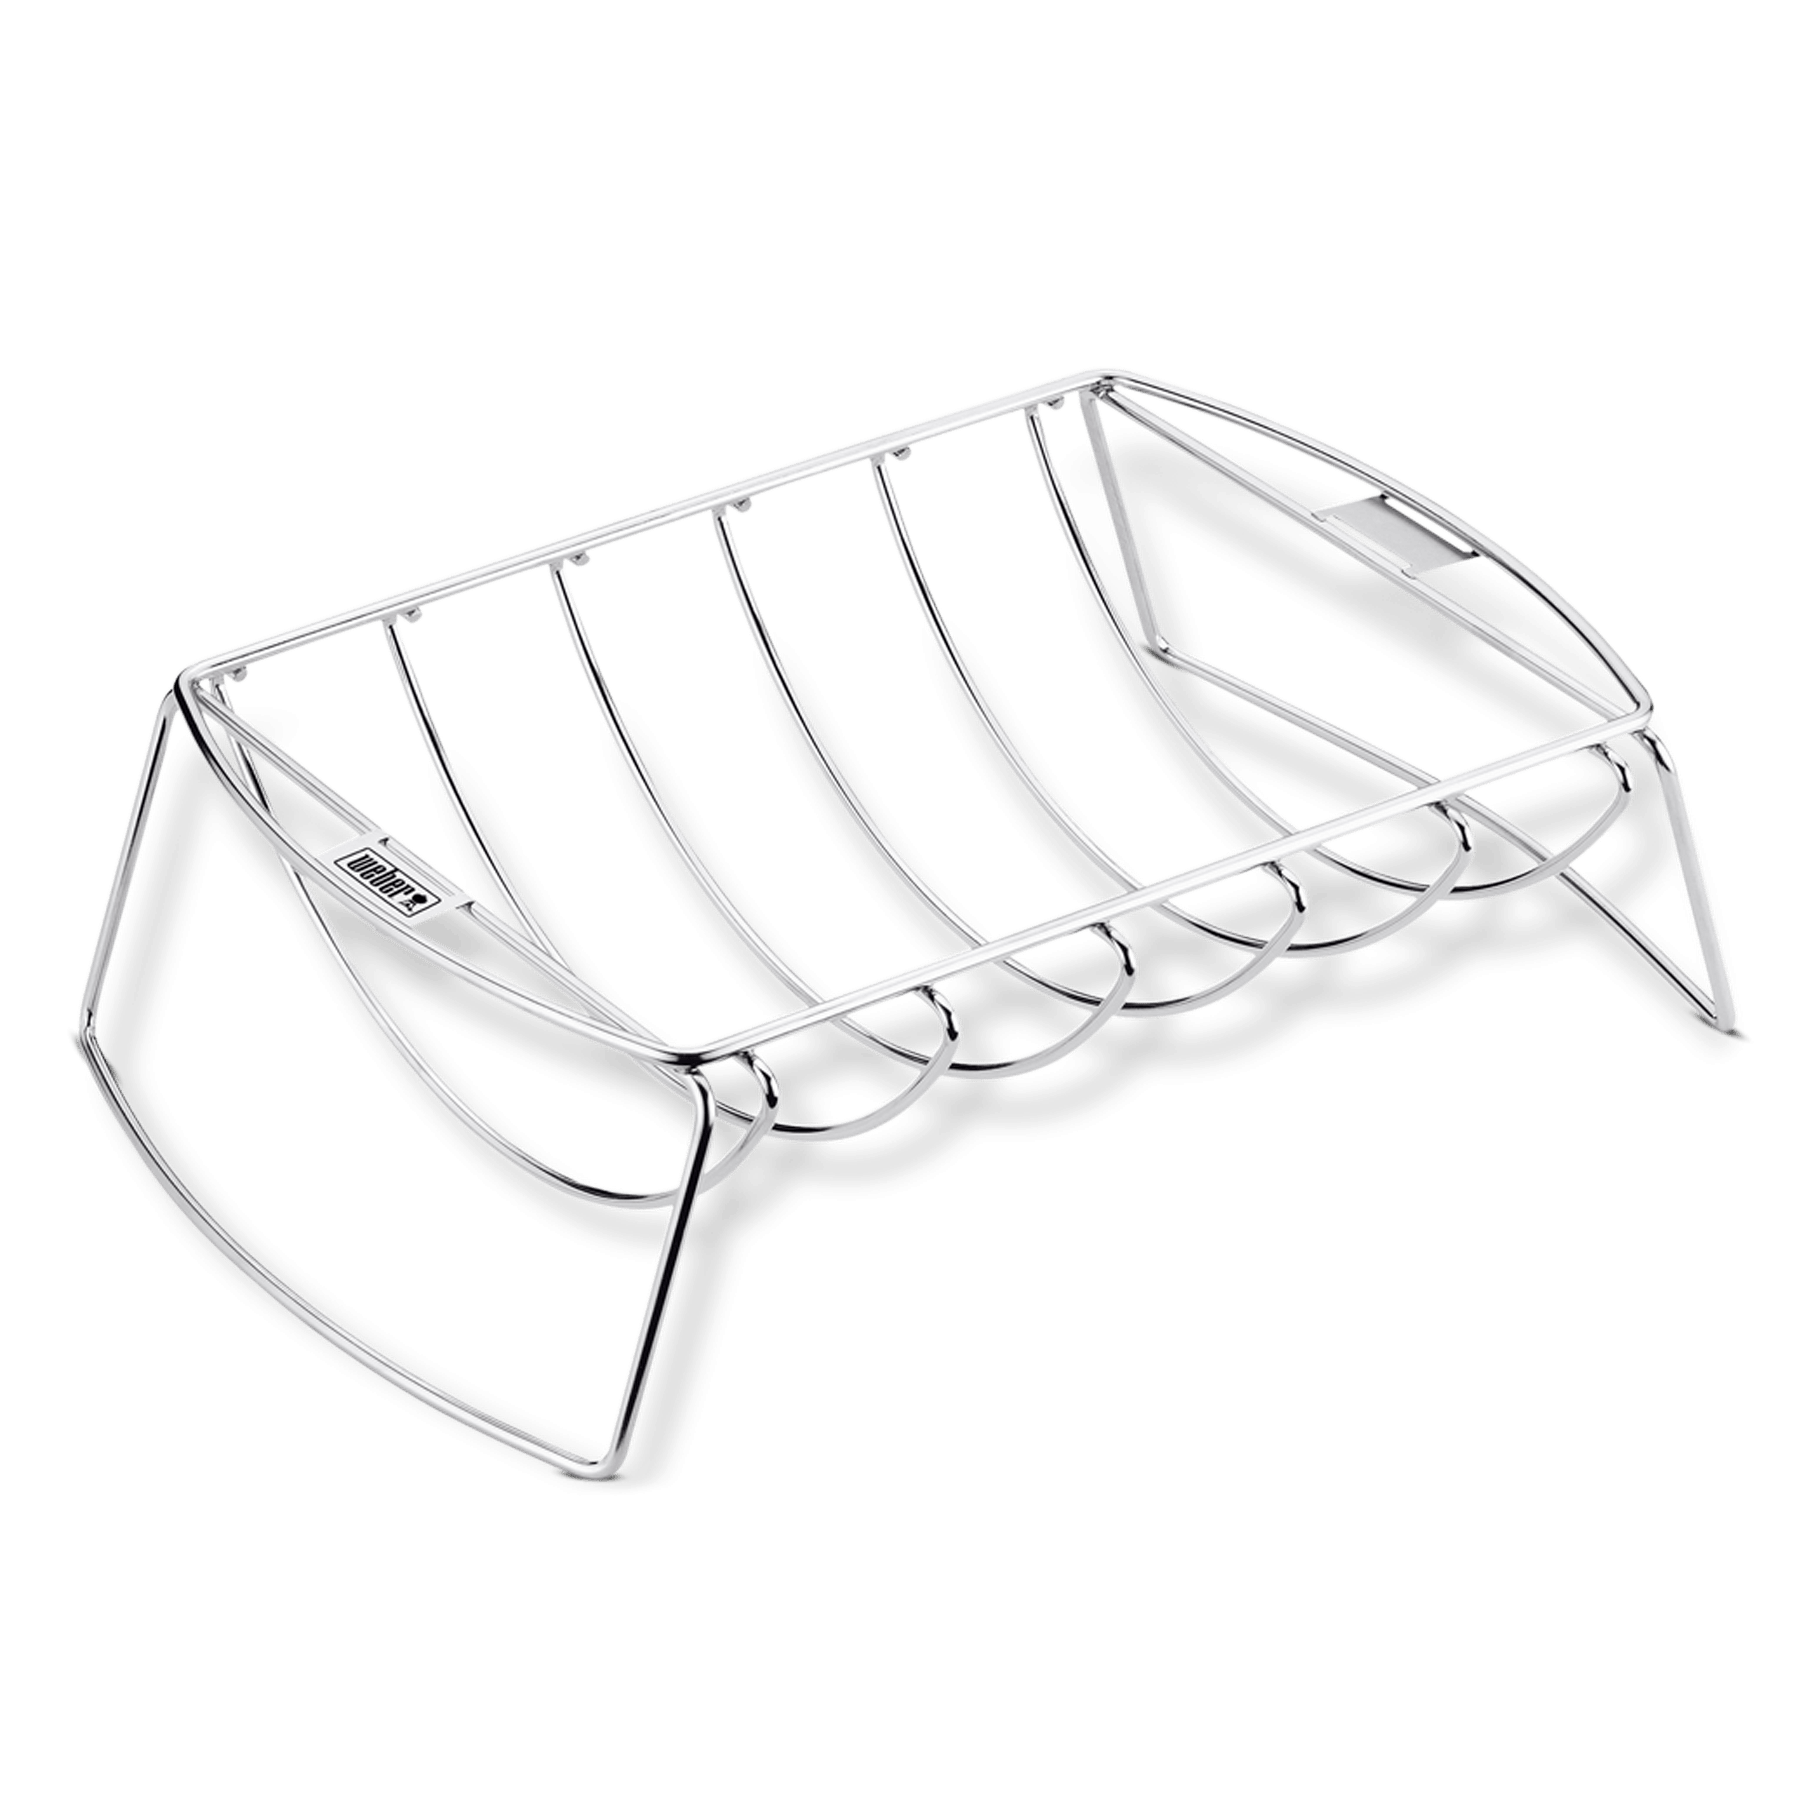 Premium Barbecue Rack